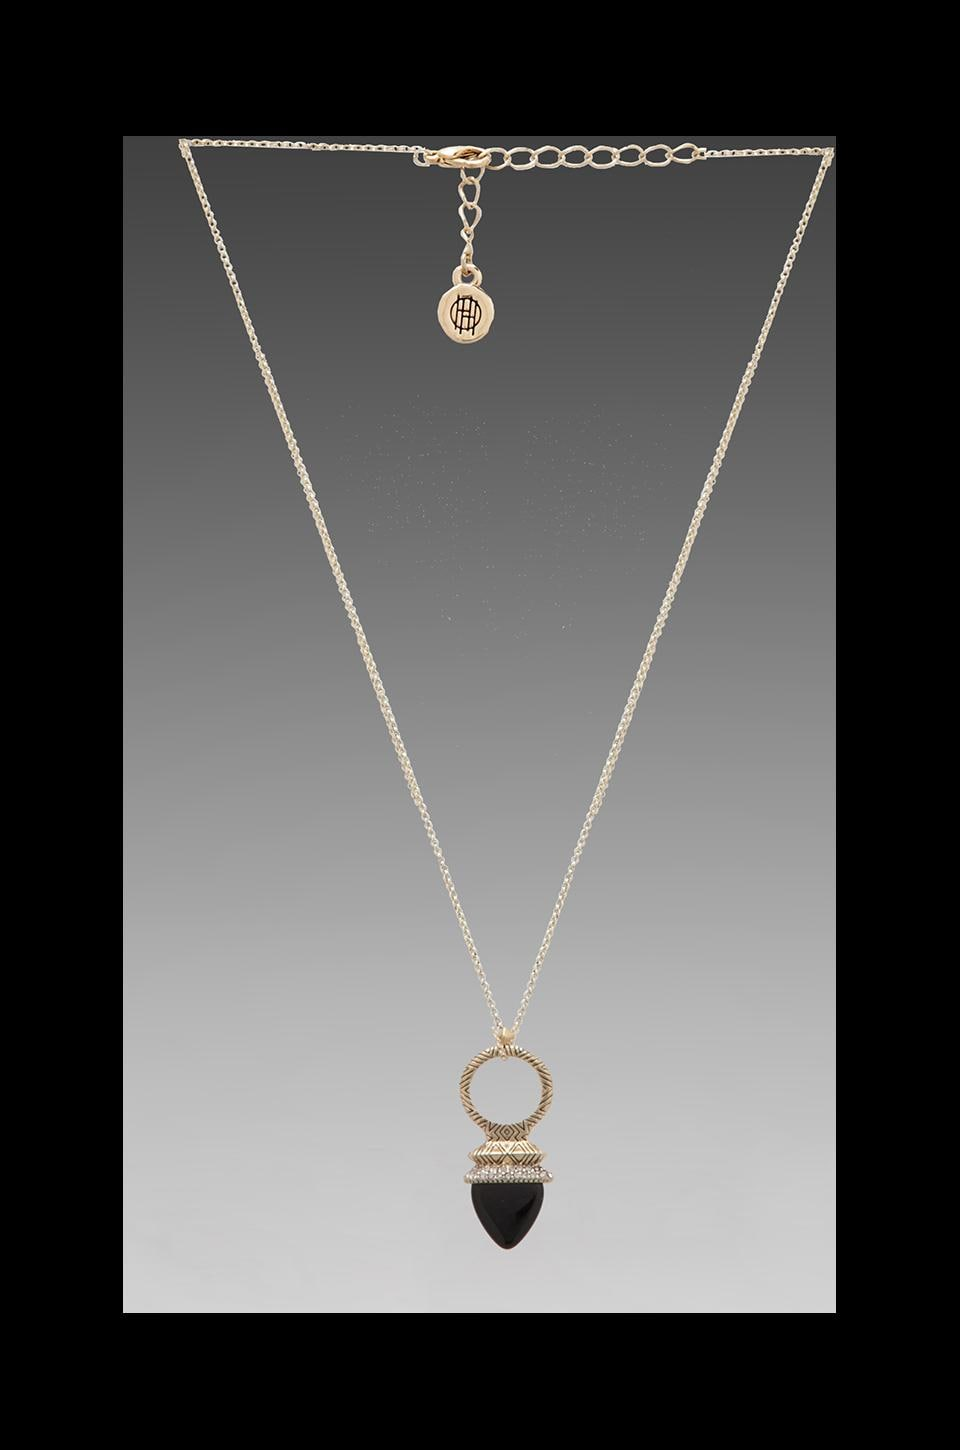 House of Harlow Plectra Pendant Necklace in Gold/Black Onyx